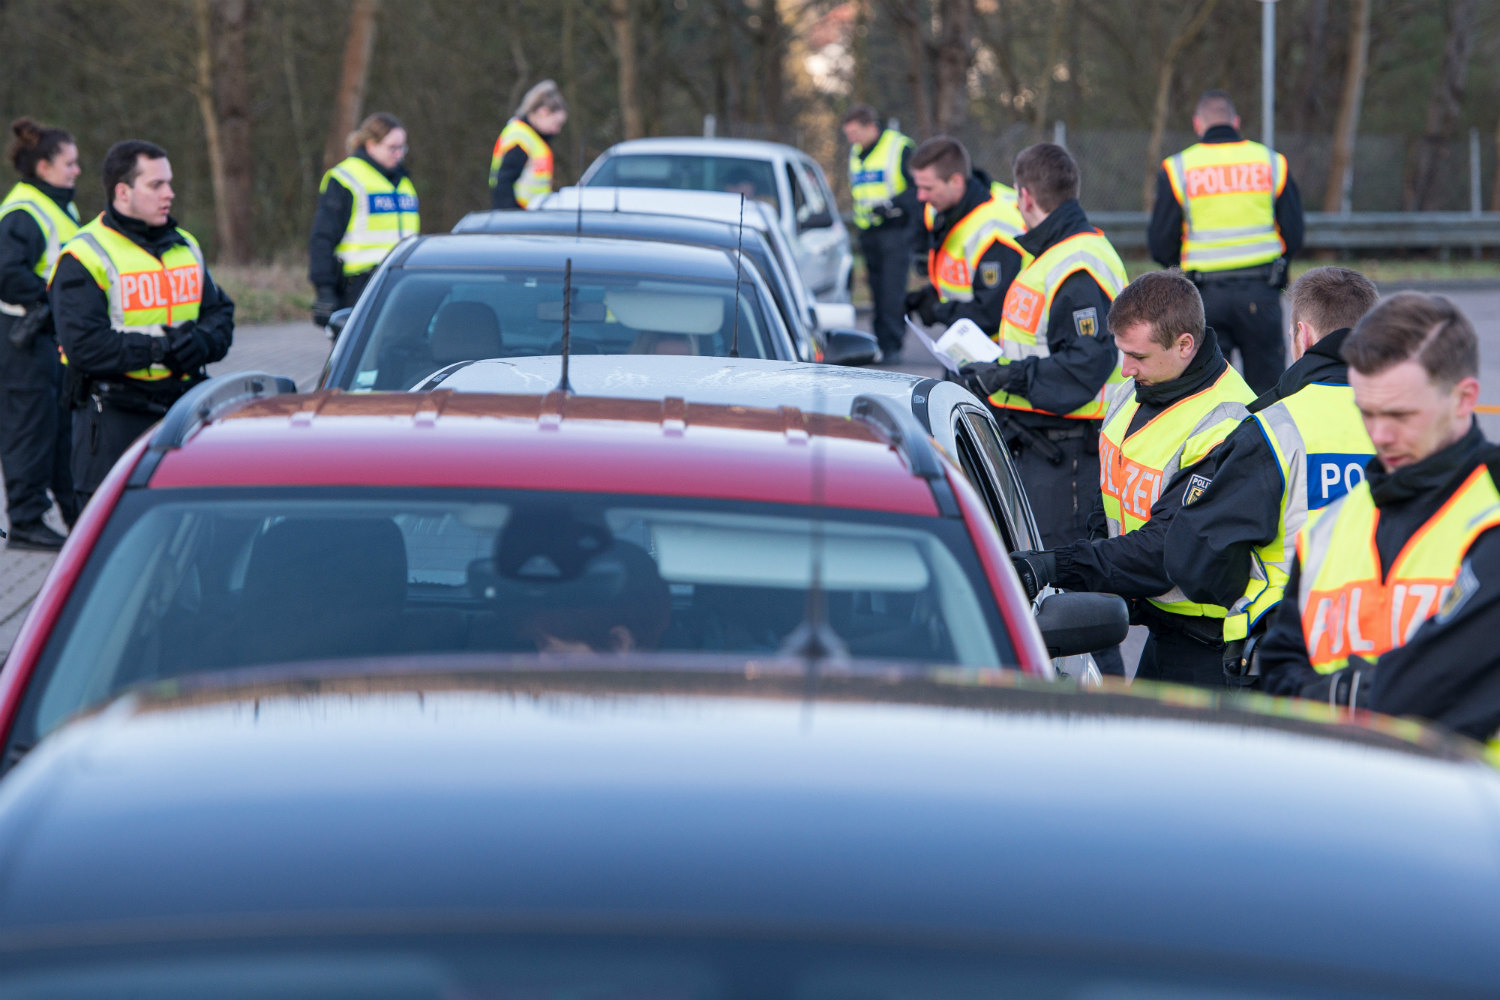 German police check drivers entering the country from France, following the reintroduction of border controls (https://www.thelocal.com/20200315/germany-to-close-its-borders)